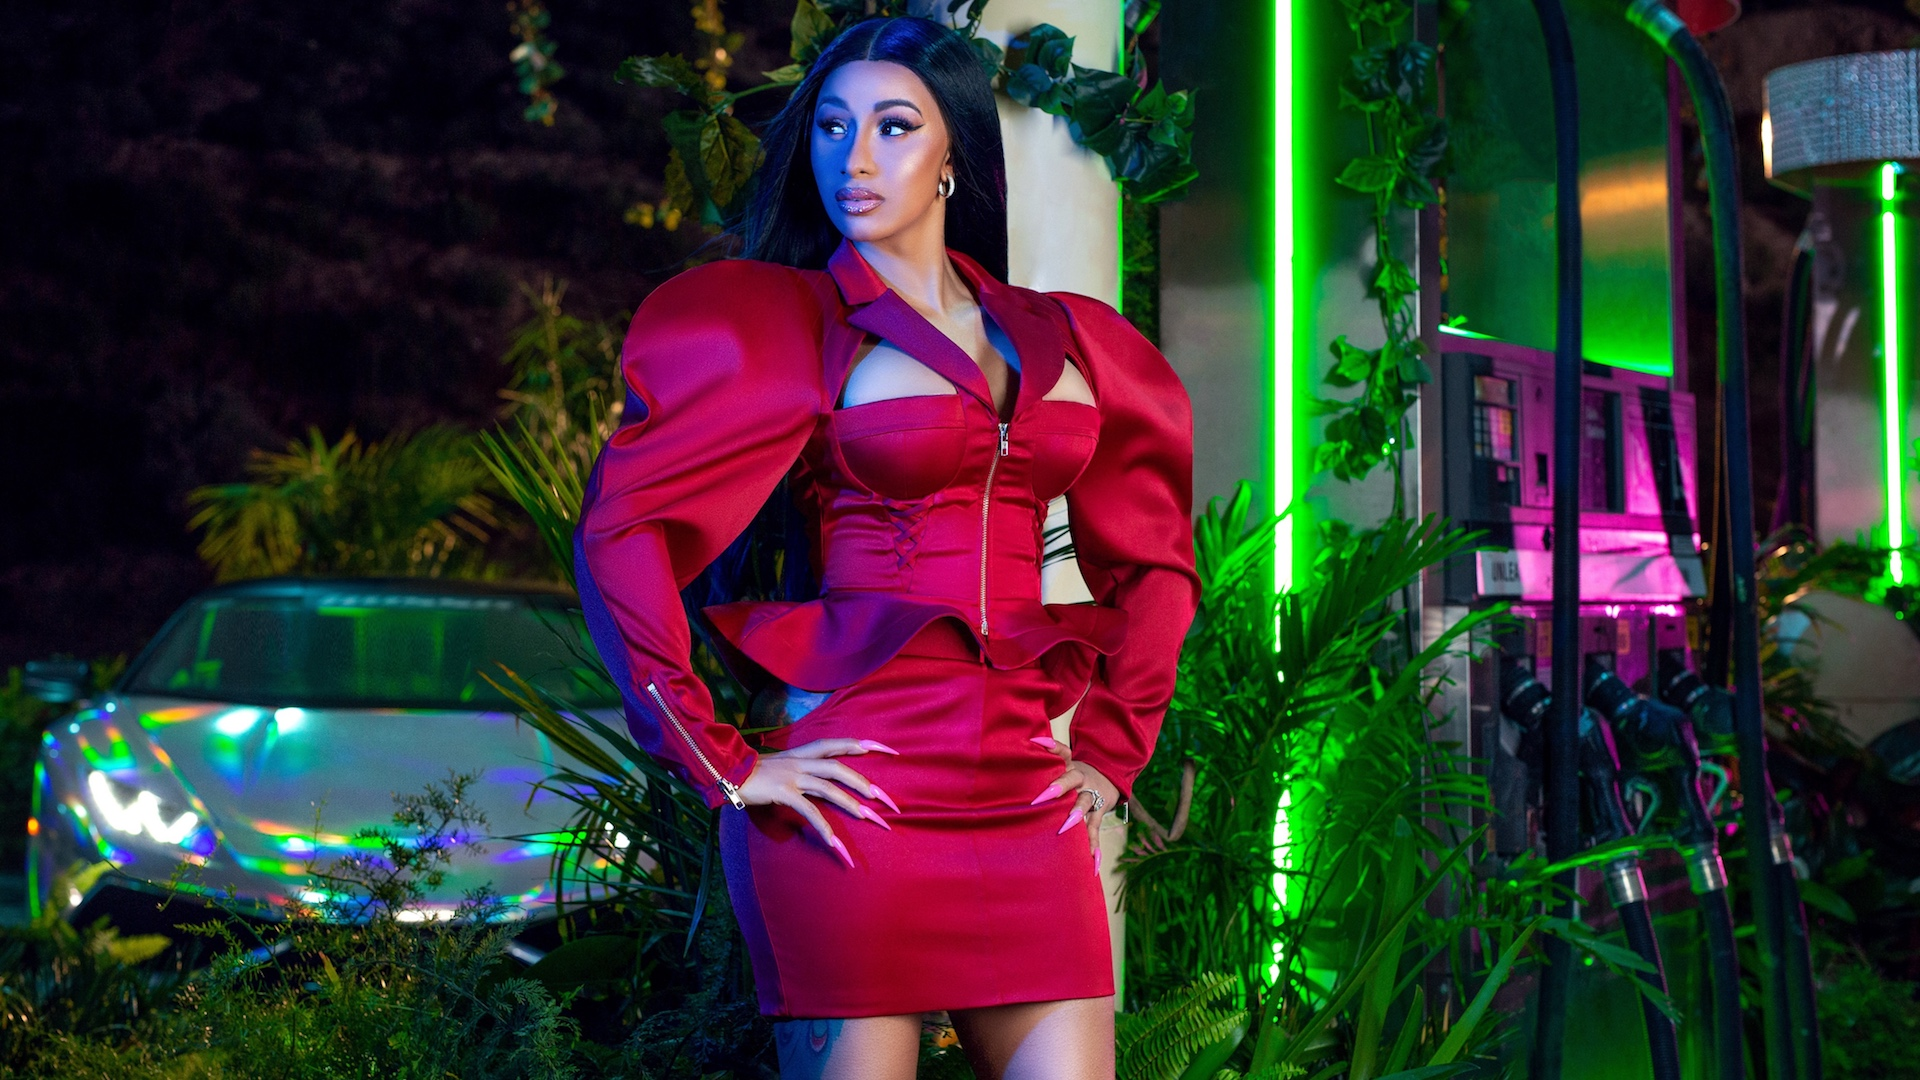 Cardi B's Second Fashion Nova Collection Is Out, Targeting Your 'Girlfriends, Side Bitc*es, Baby Mamas, Mamas, Aunties, Sisters' And More